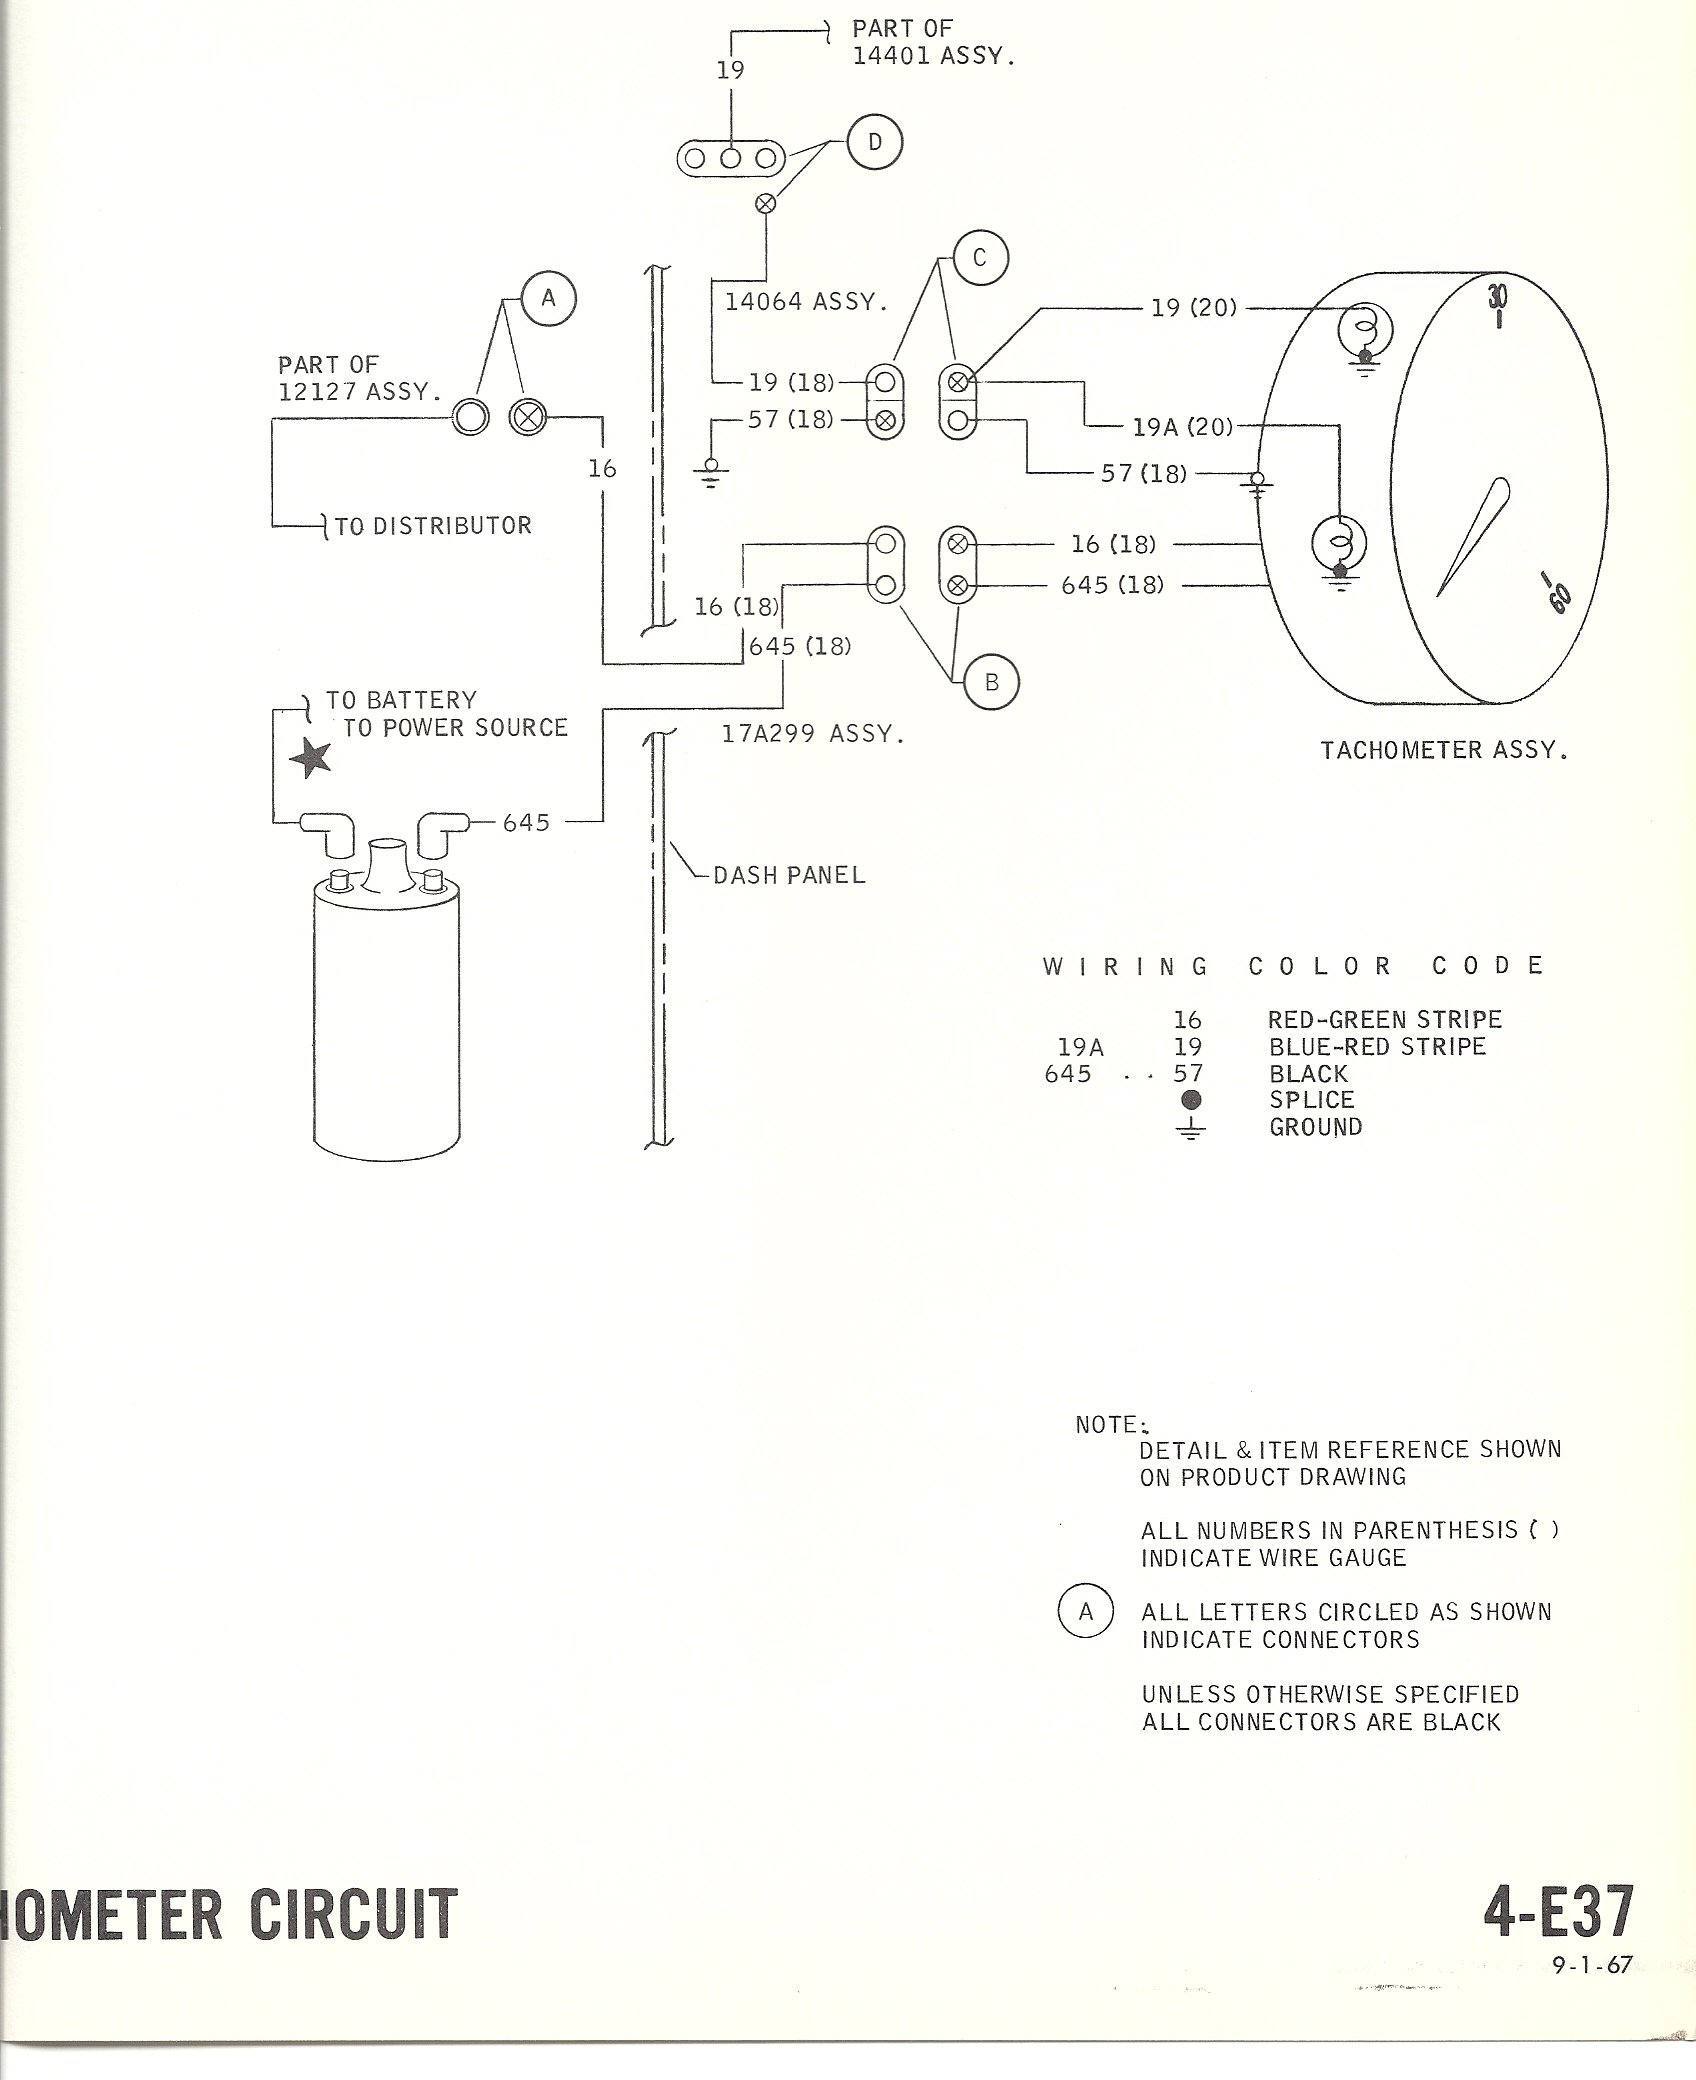 89255d1264897998 1968 mustang wiring diagrams tach please help tach wiring diagram 1968 mustang wiring diagrams with tach, please help ford mustang mallory tachometer wiring diagram at crackthecode.co